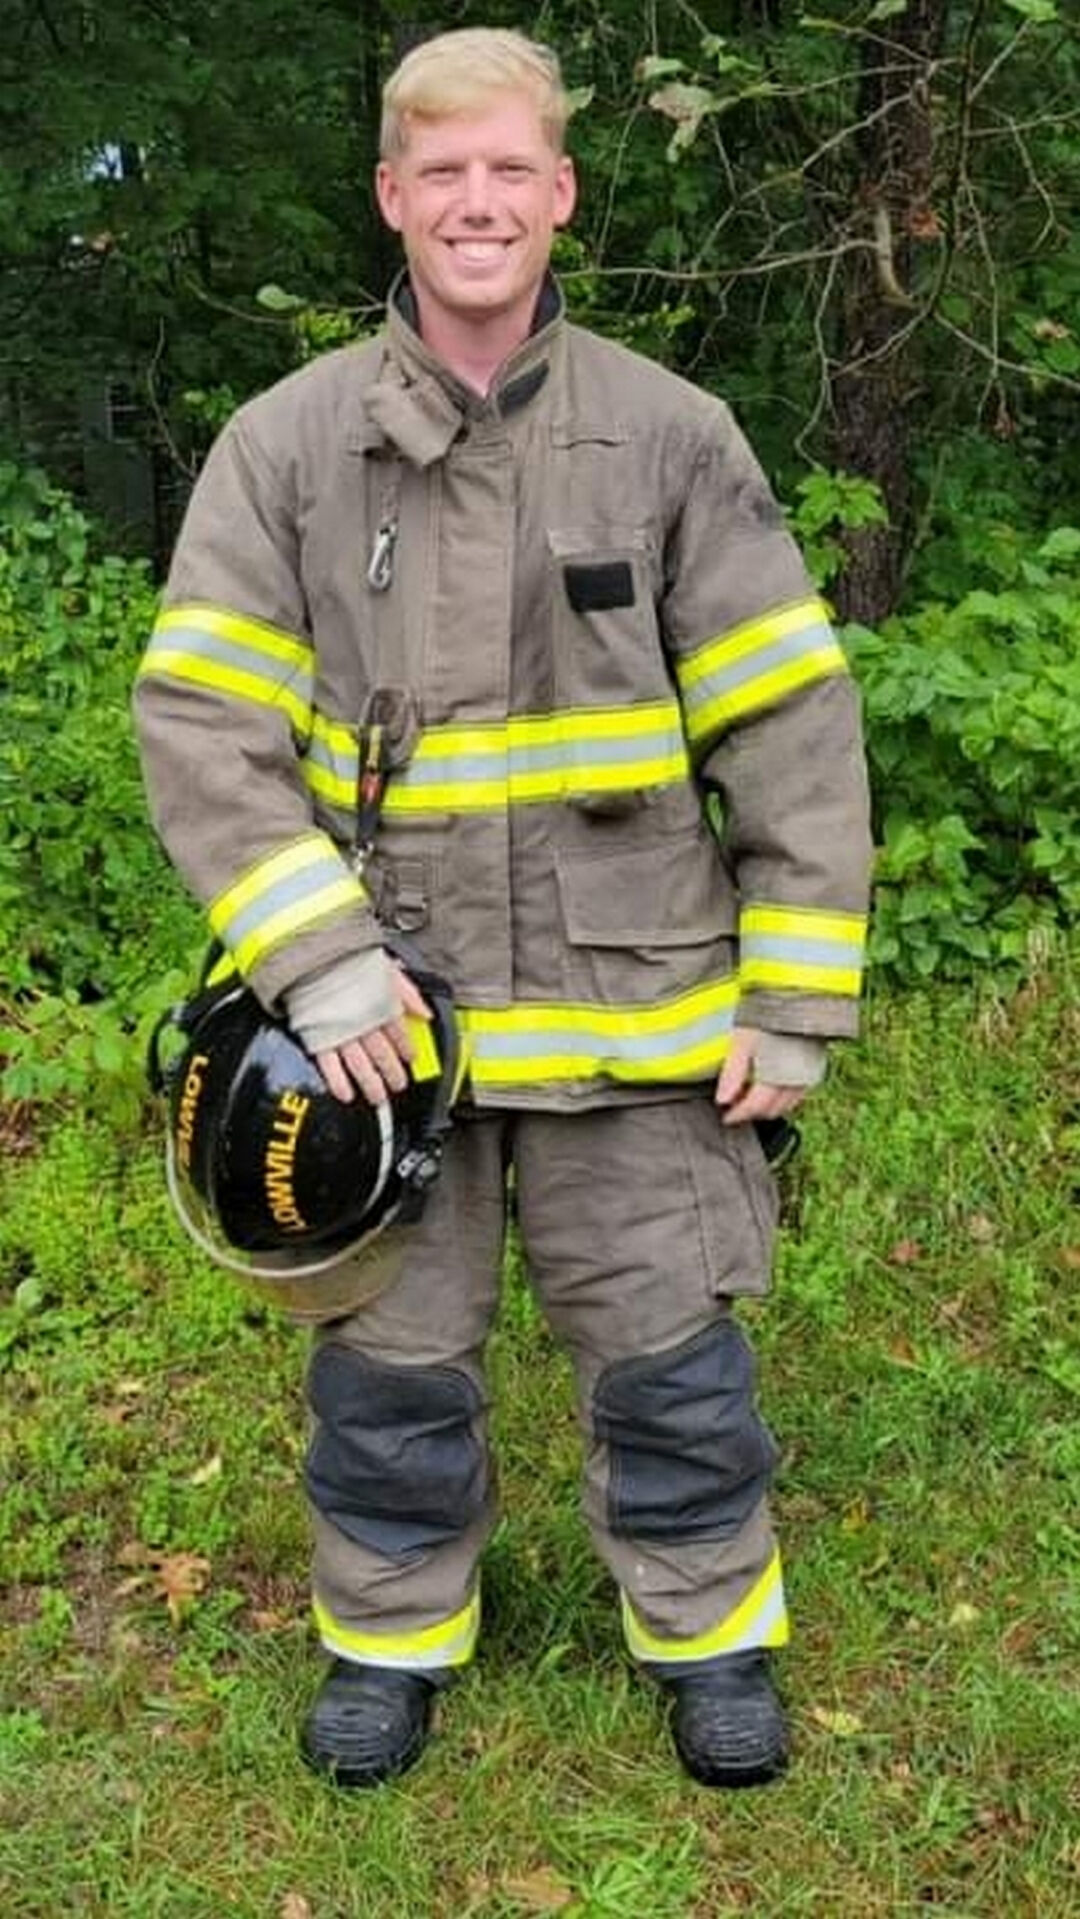 Lowville fireman to observe 9/11 with stair climb